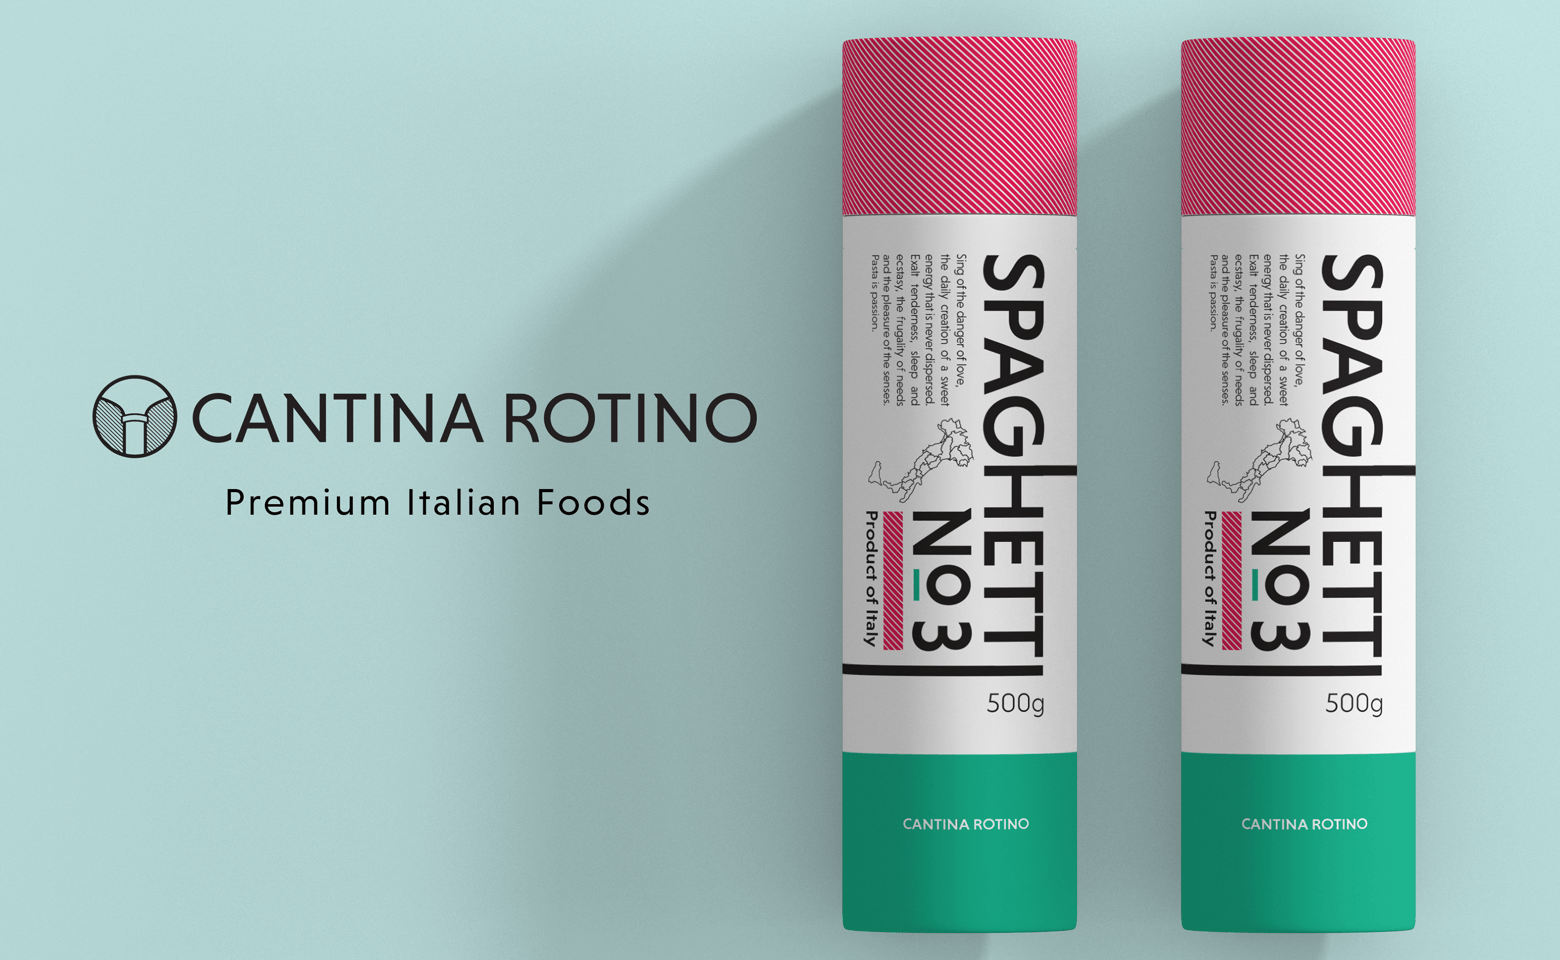 Cantina rotino packaging